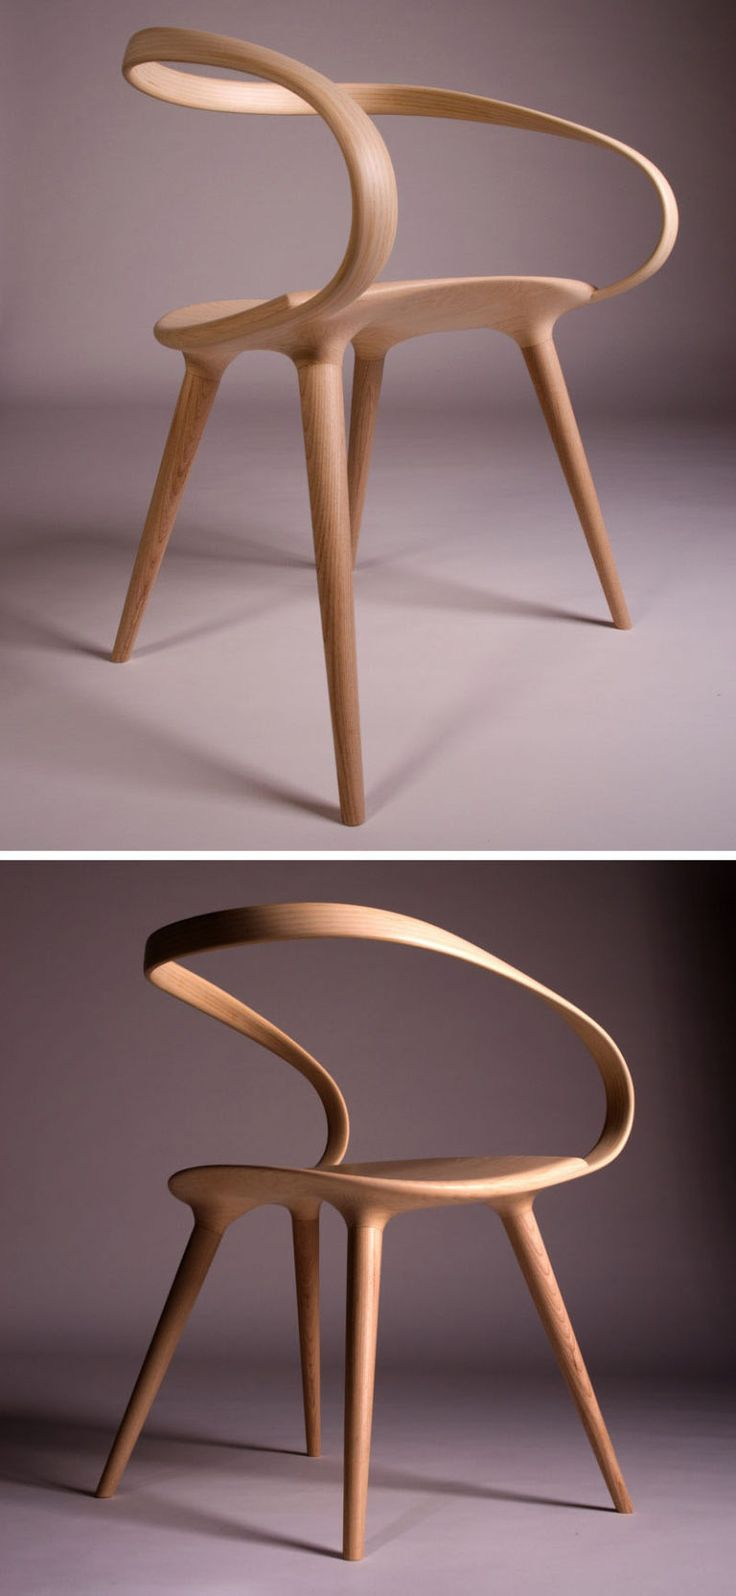 wooden design furniture. the velo chair uses a single piece of bent wood as backrest when british designer jan waterston was creating his inspiration came from wooden design furniture